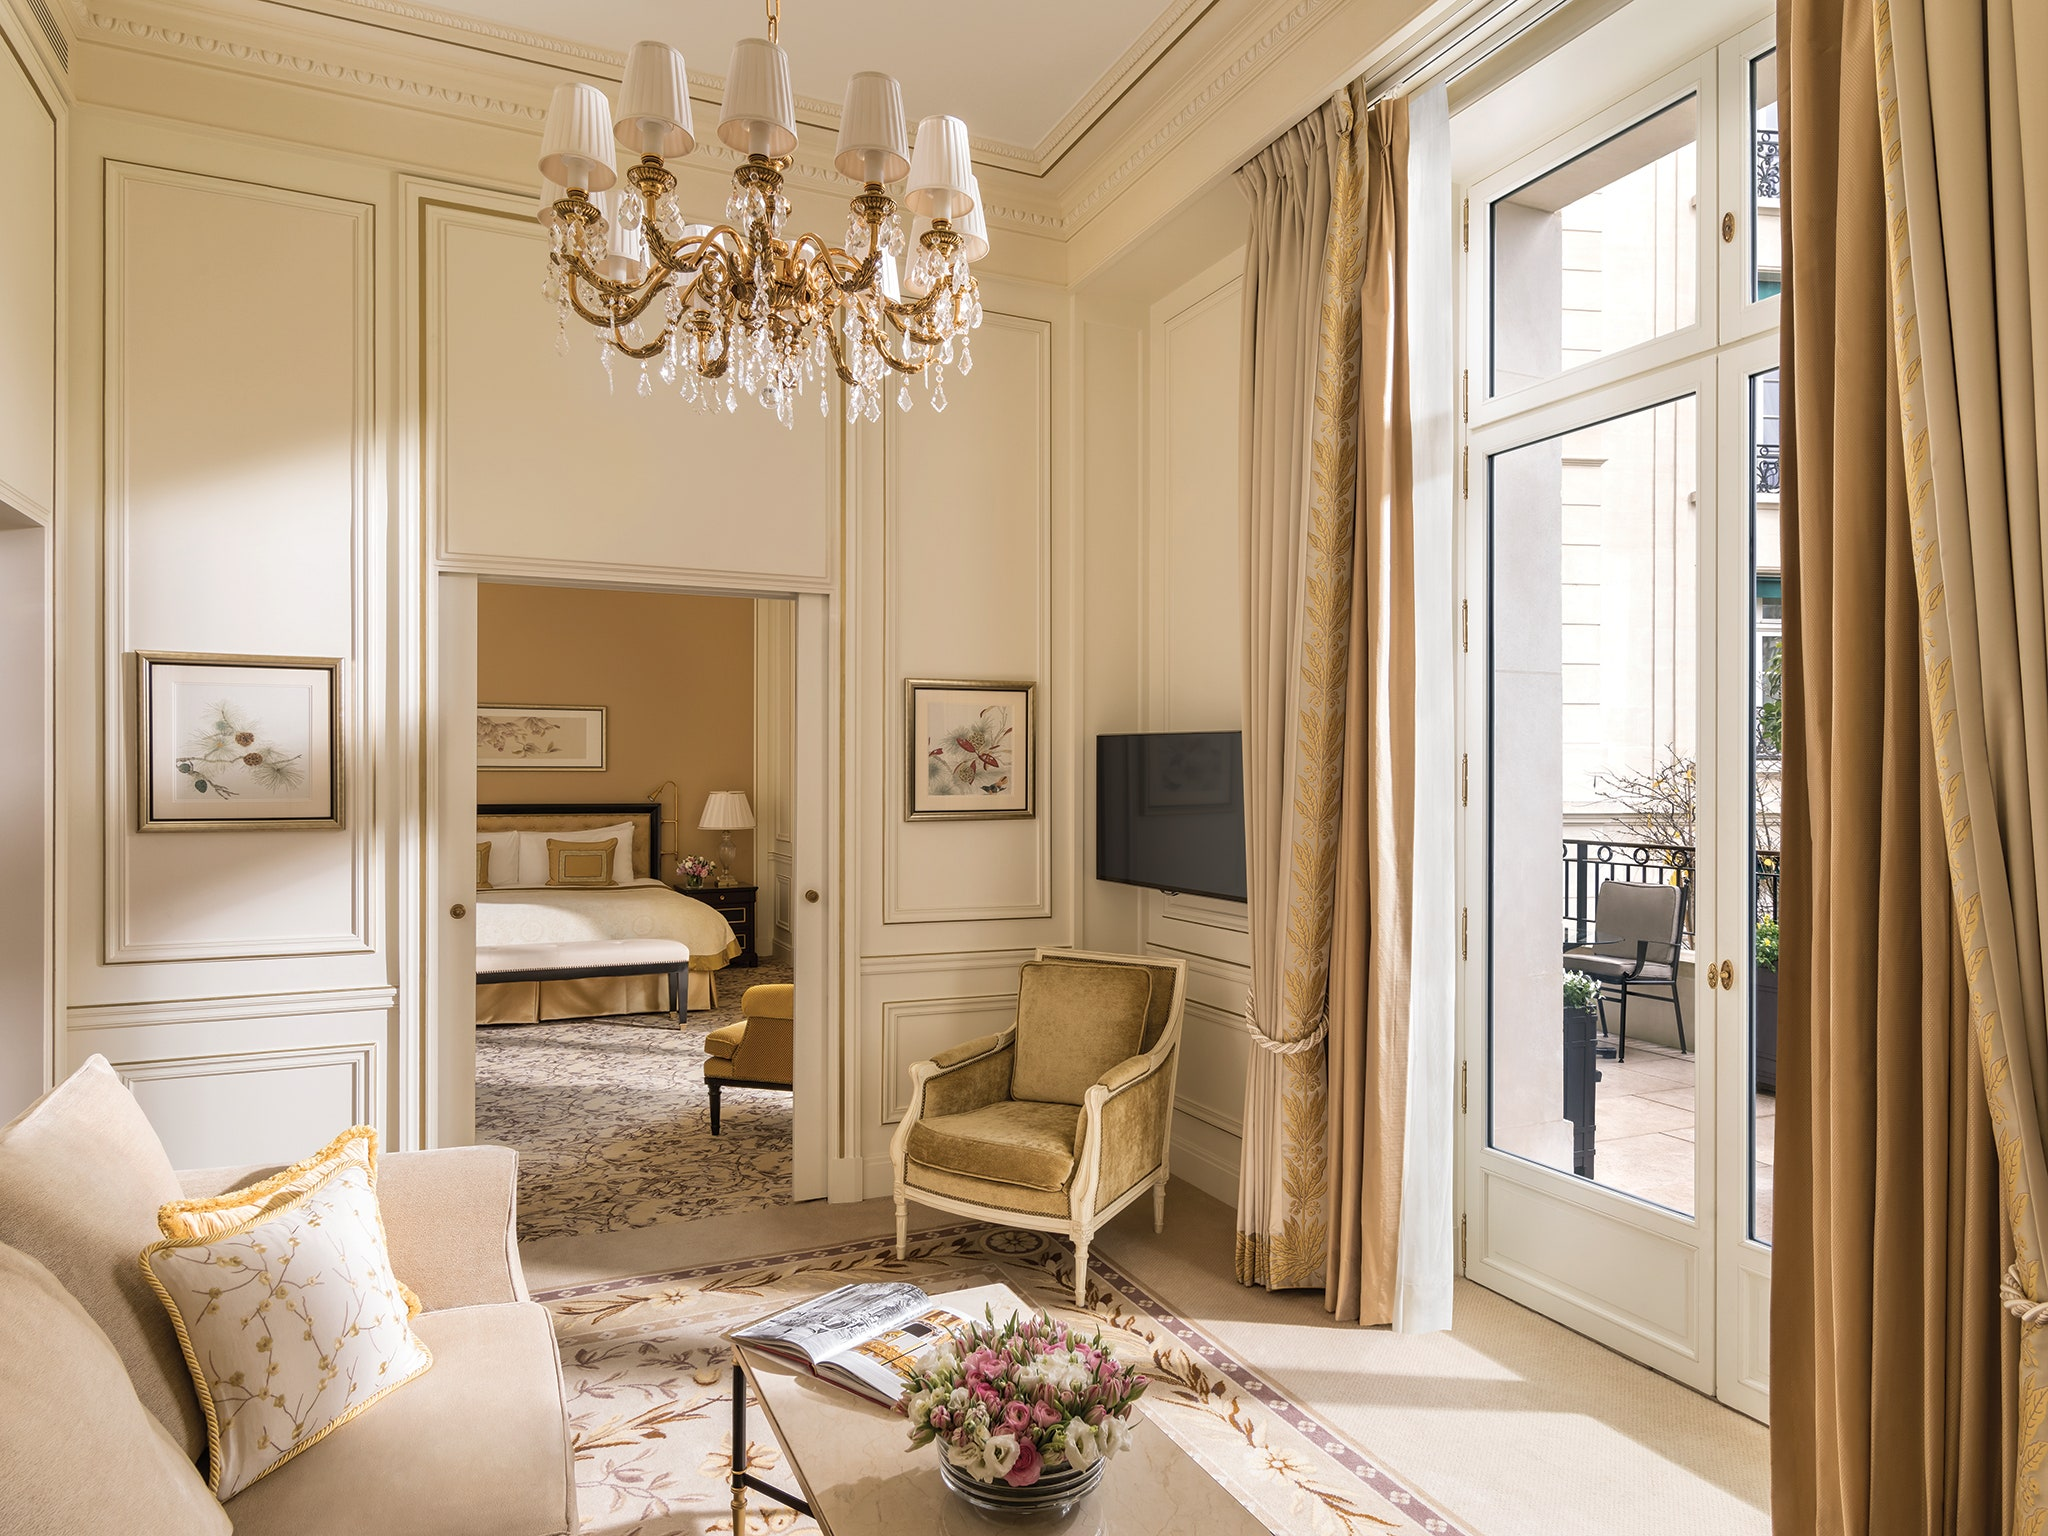 pierre-yves rochon Interior Design from Paris to Chicago: Pierre-Yves Rochon Suite2 ShangriLaHotelParis ParisFrance CRHotel